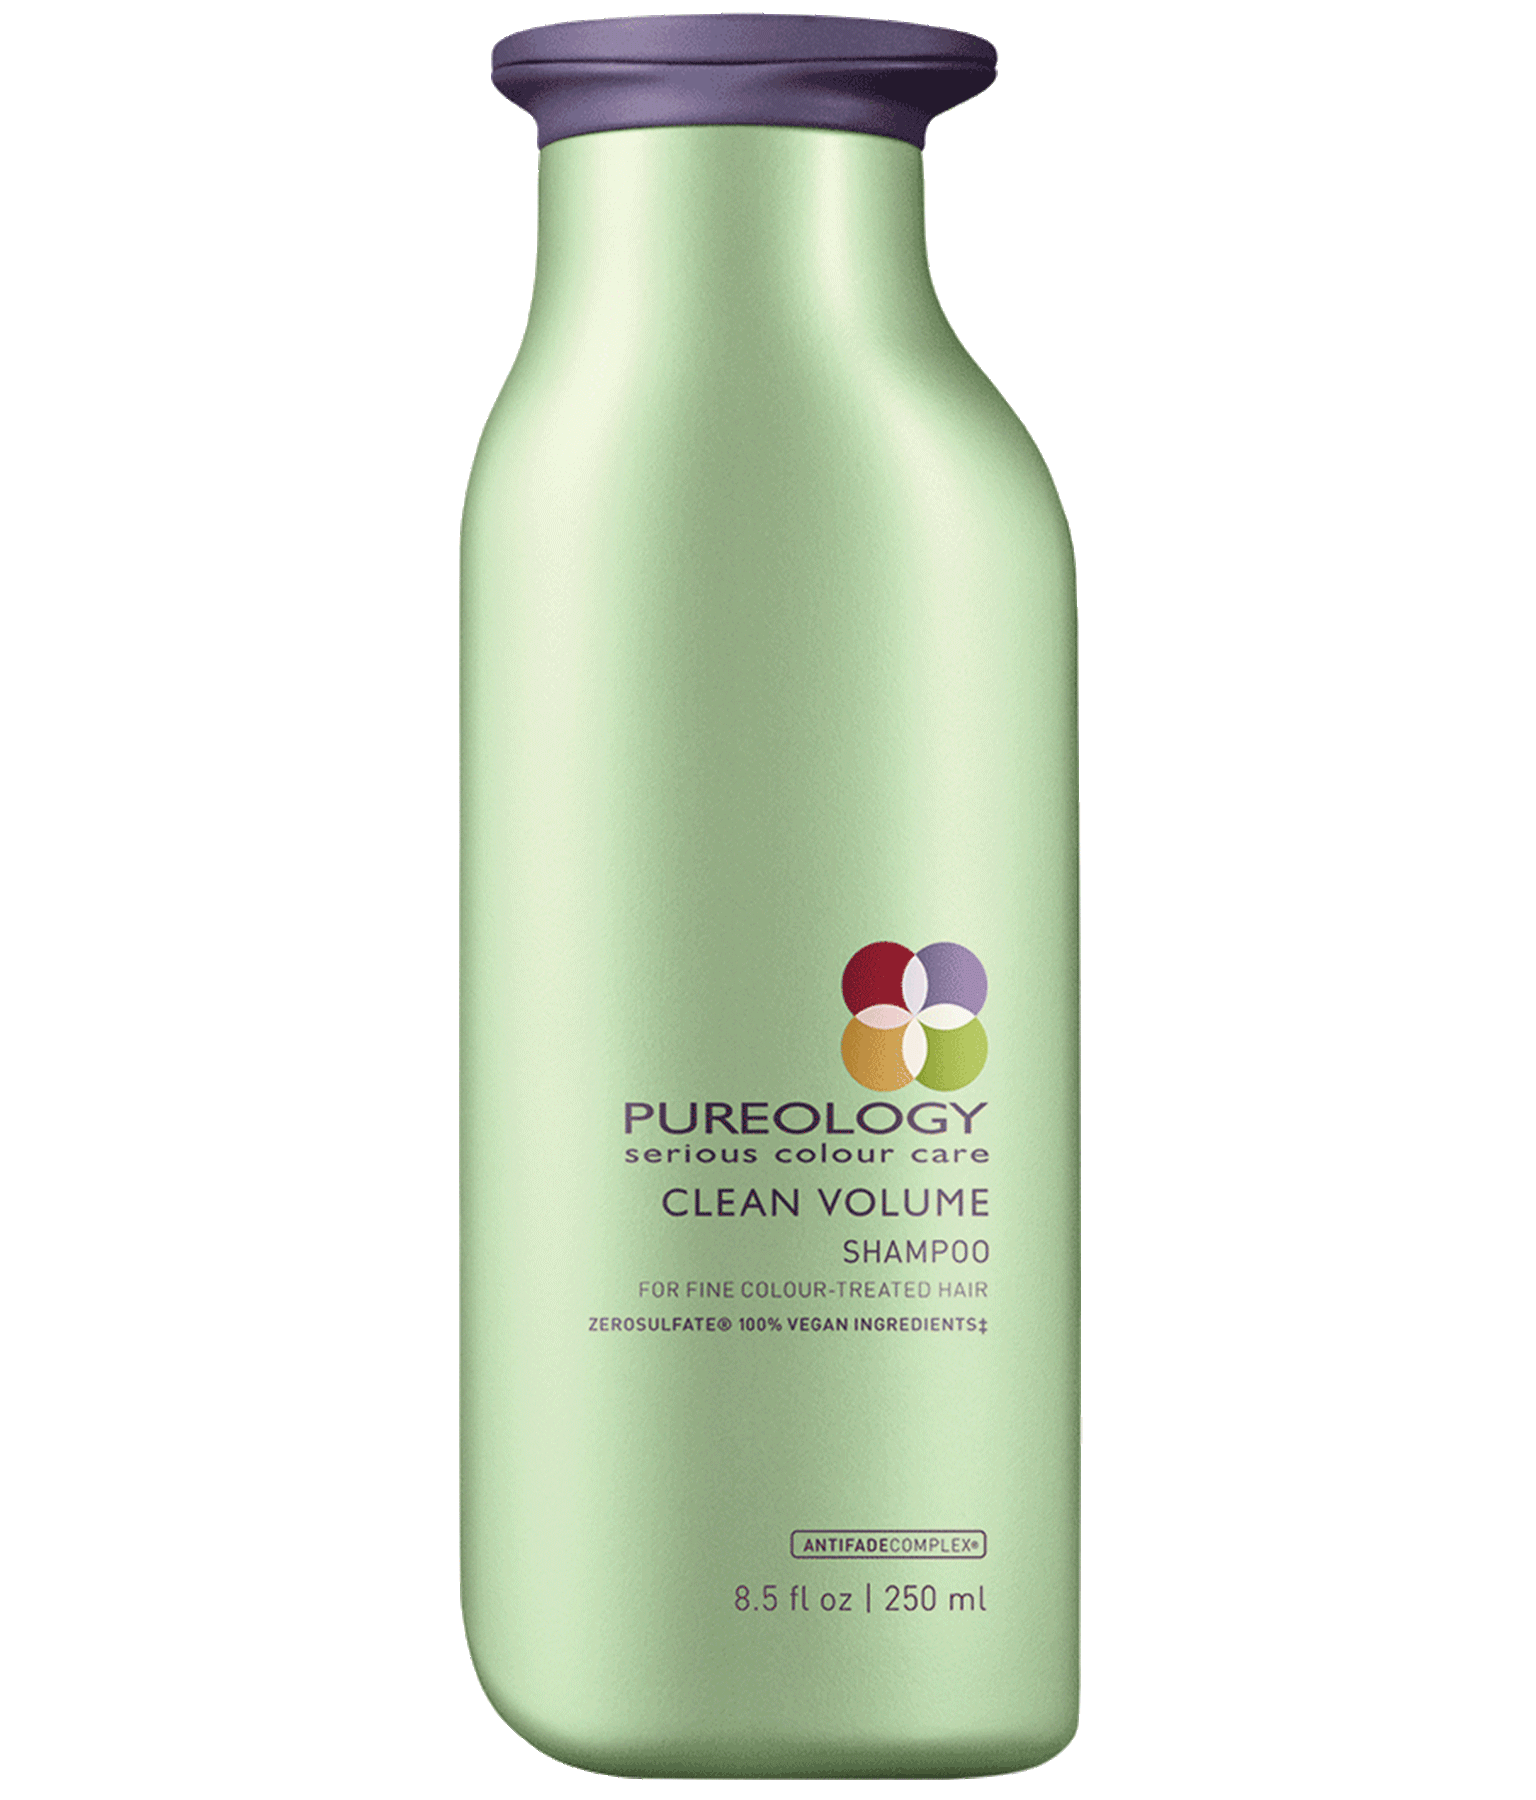 Volumizing Shampoo Color Treated Hair Pureology Clean Volume